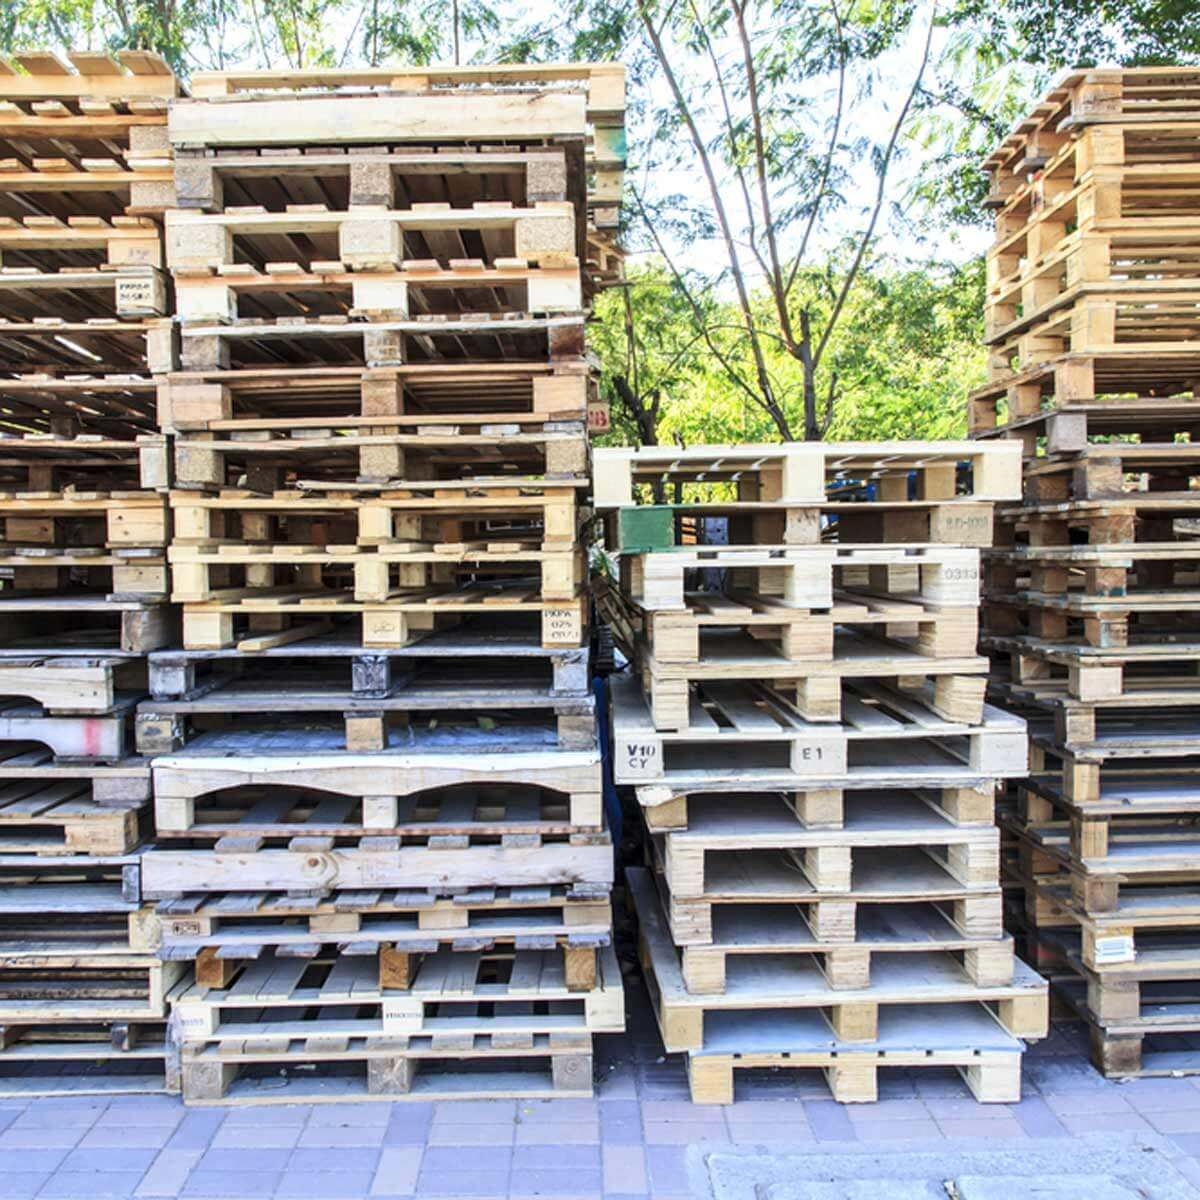 wood pallet stacks